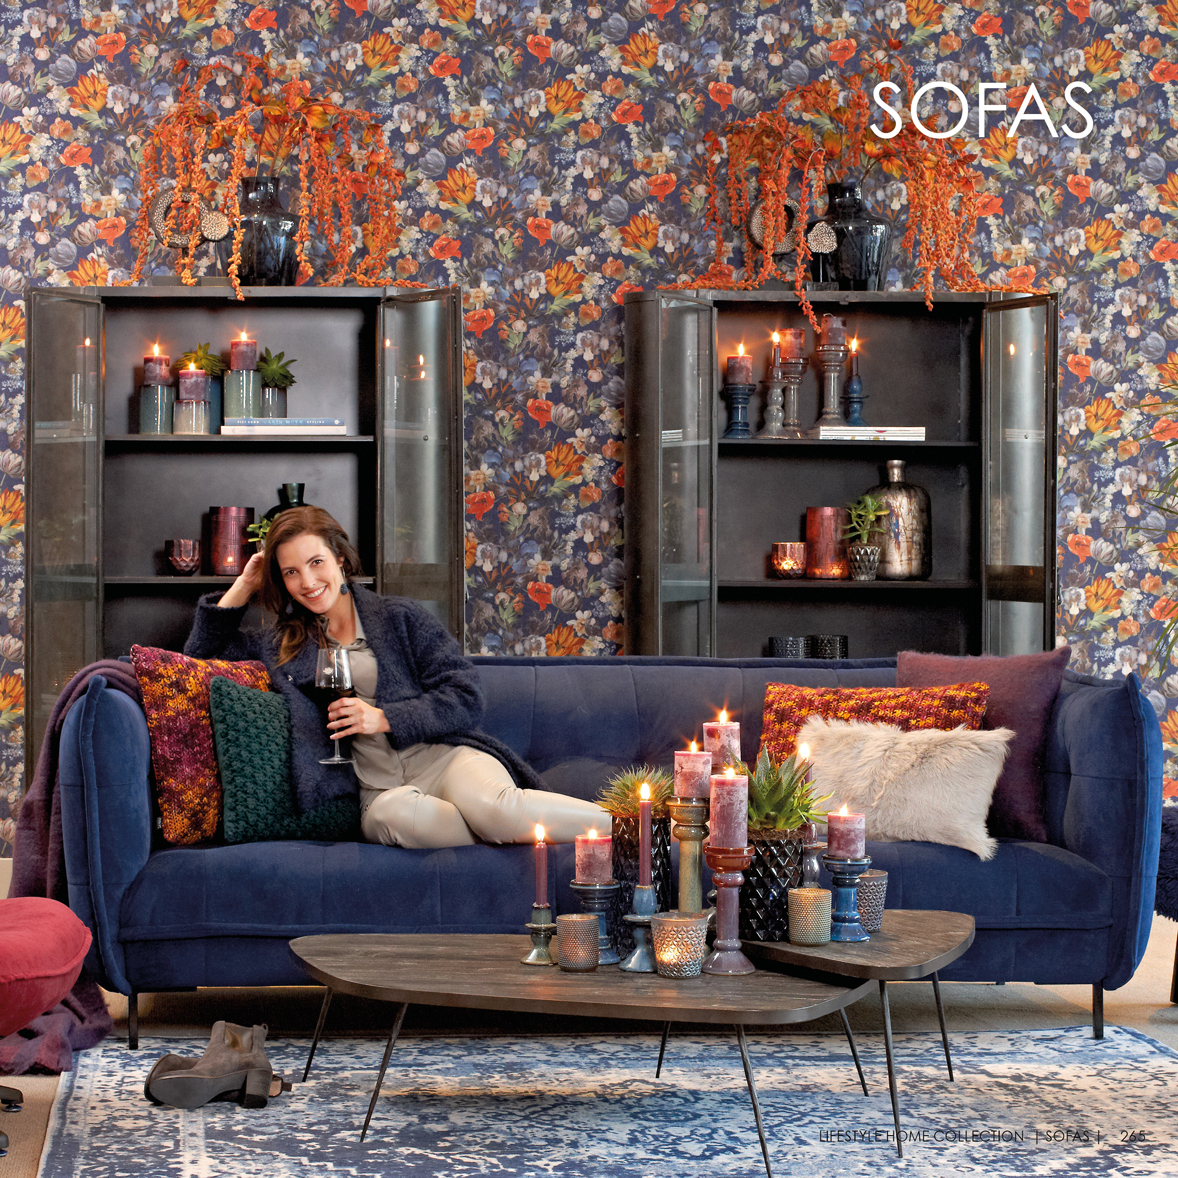 Sofas lifestyle home collection - Lifestyle home collection ...